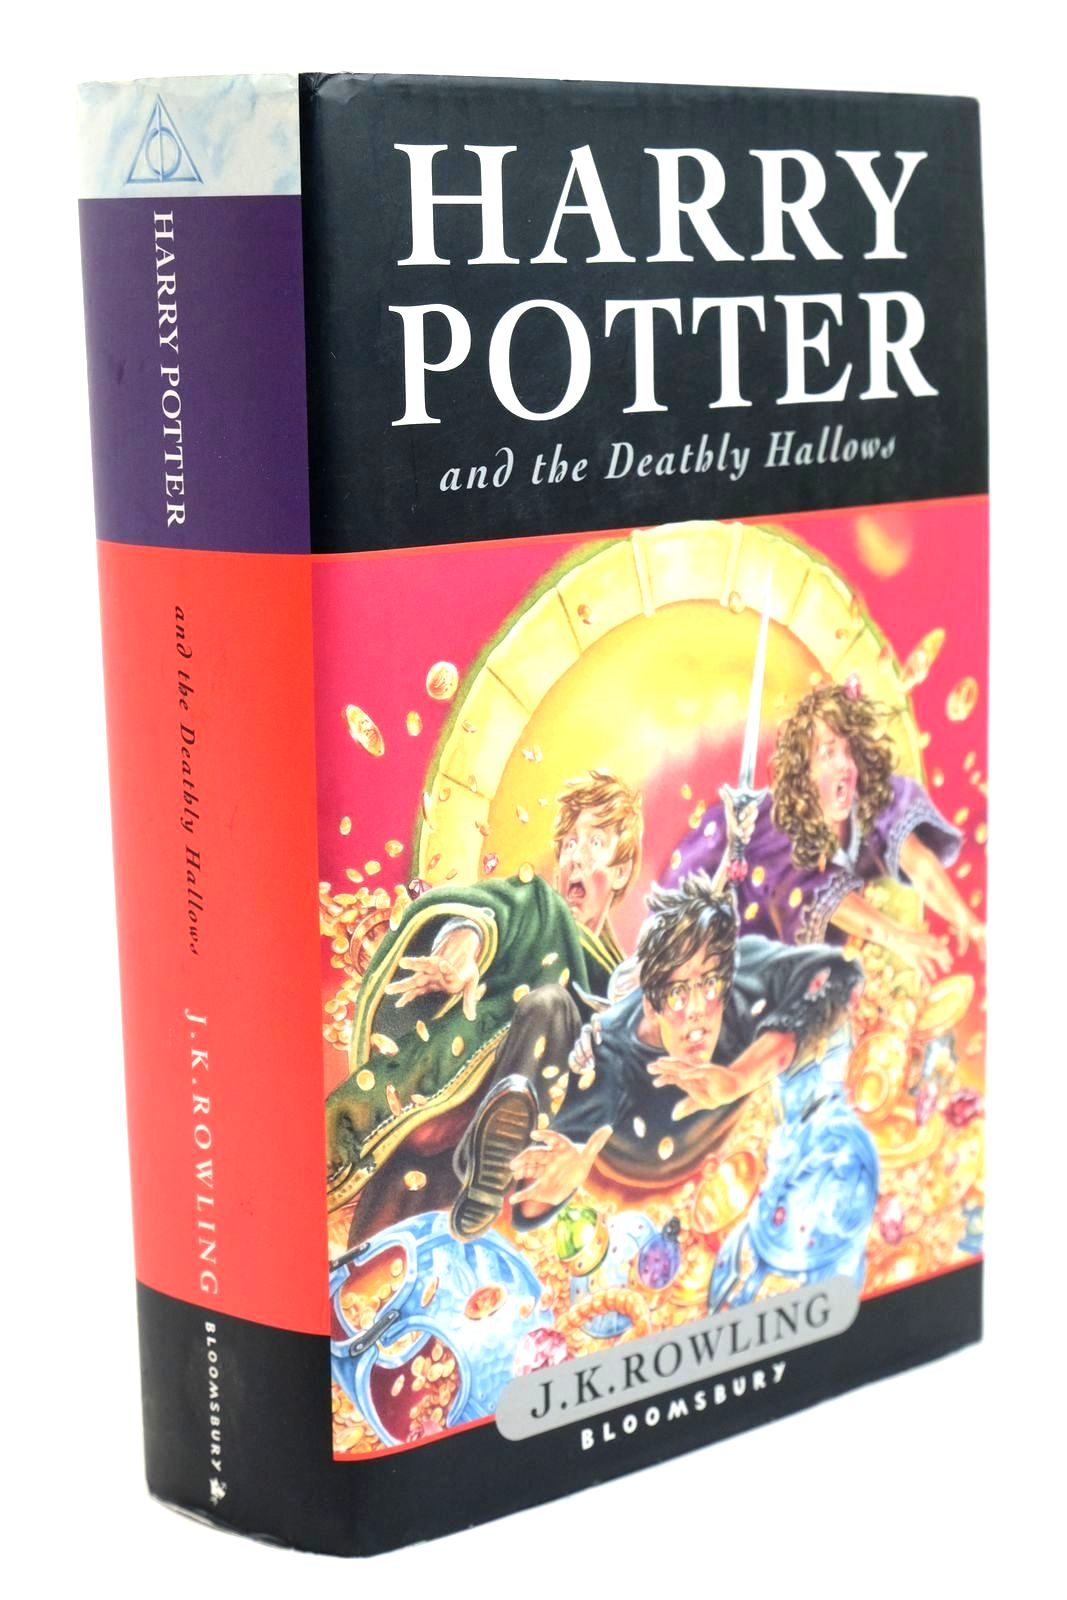 Photo of HARRY POTTER AND THE DEATHLY HALLOWS written by Rowling, J.K. published by Bloomsbury (STOCK CODE: 1321428)  for sale by Stella & Rose's Books